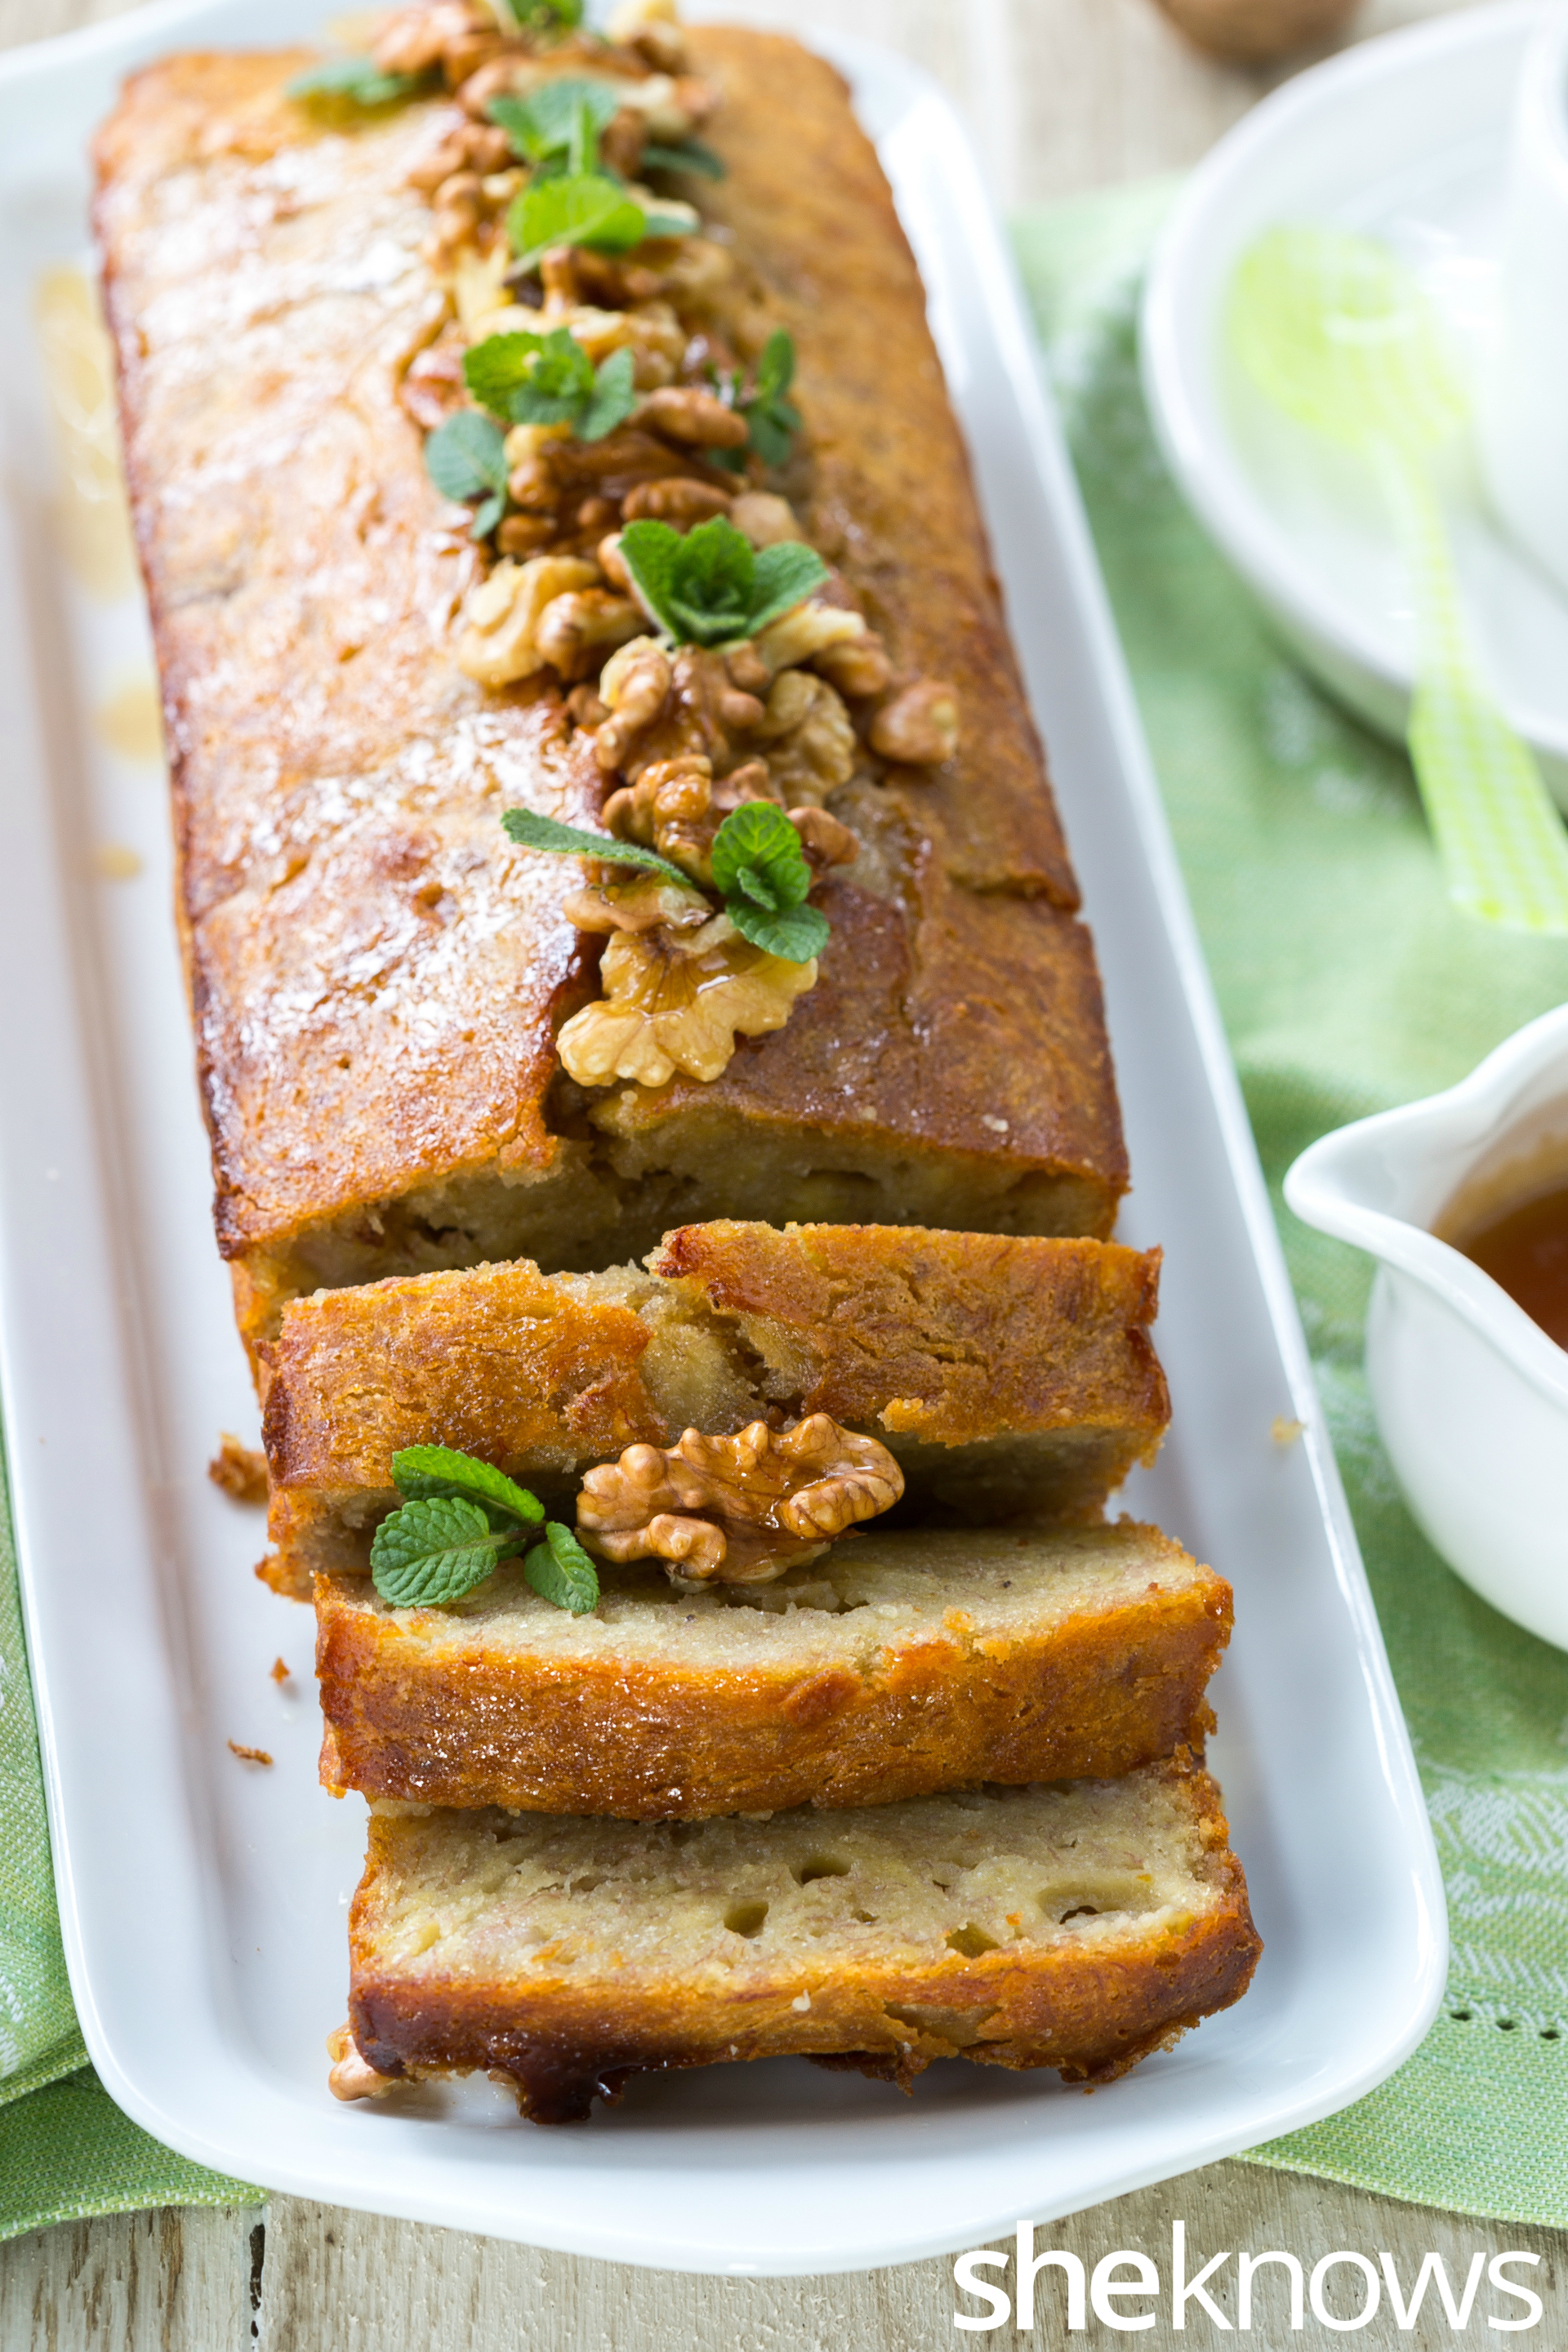 Banana-walnut-cake-with-brandy-sauce-vertical